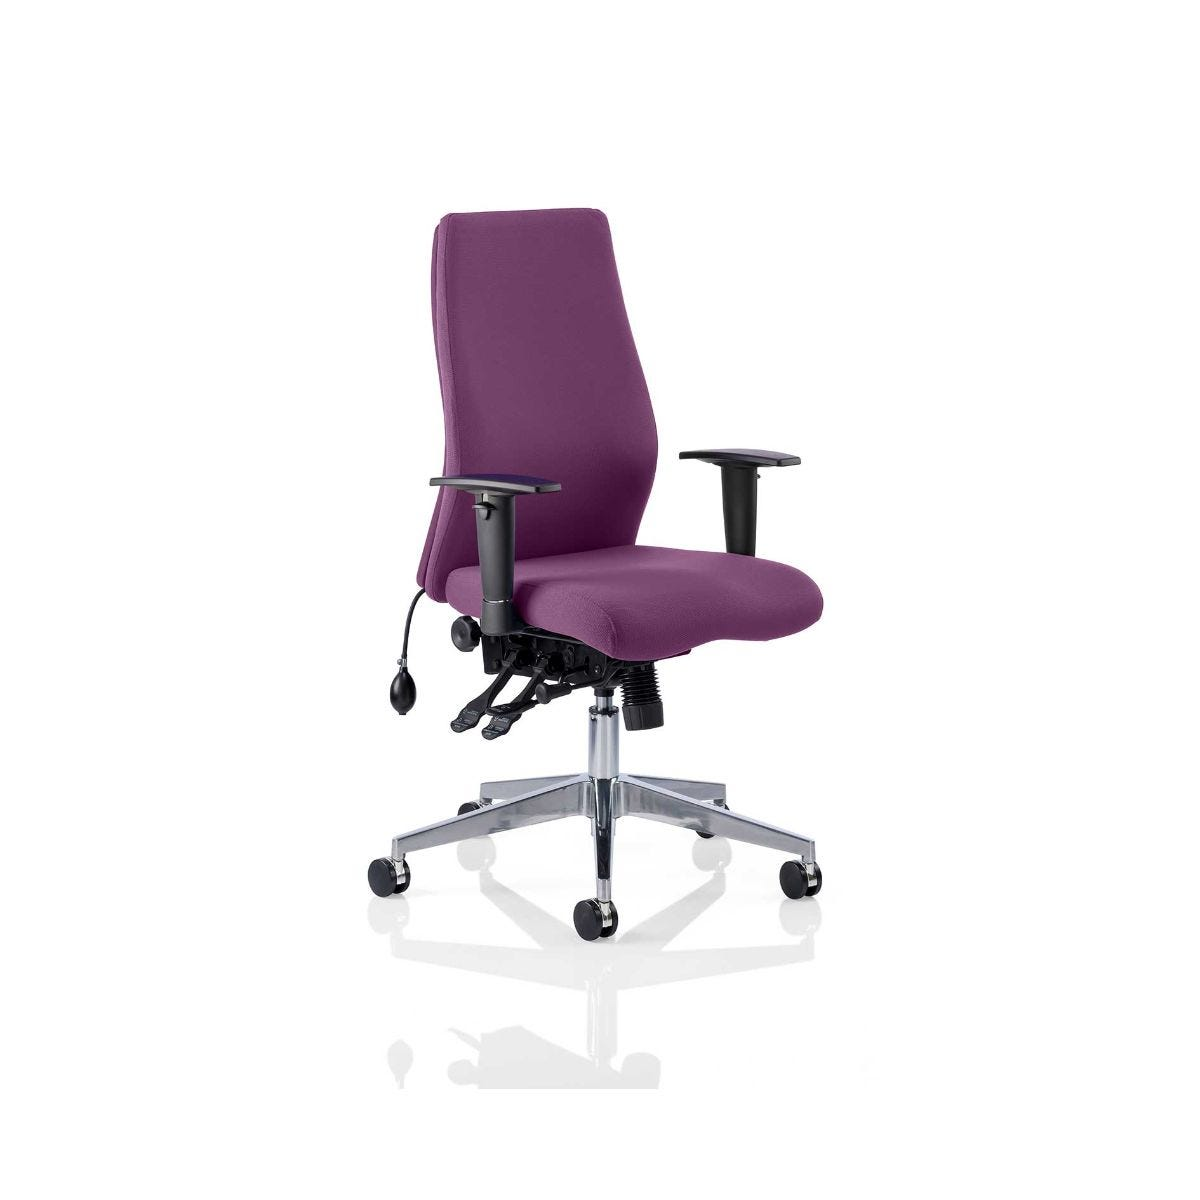 Onyx Bespoke Office Chair, Tansy